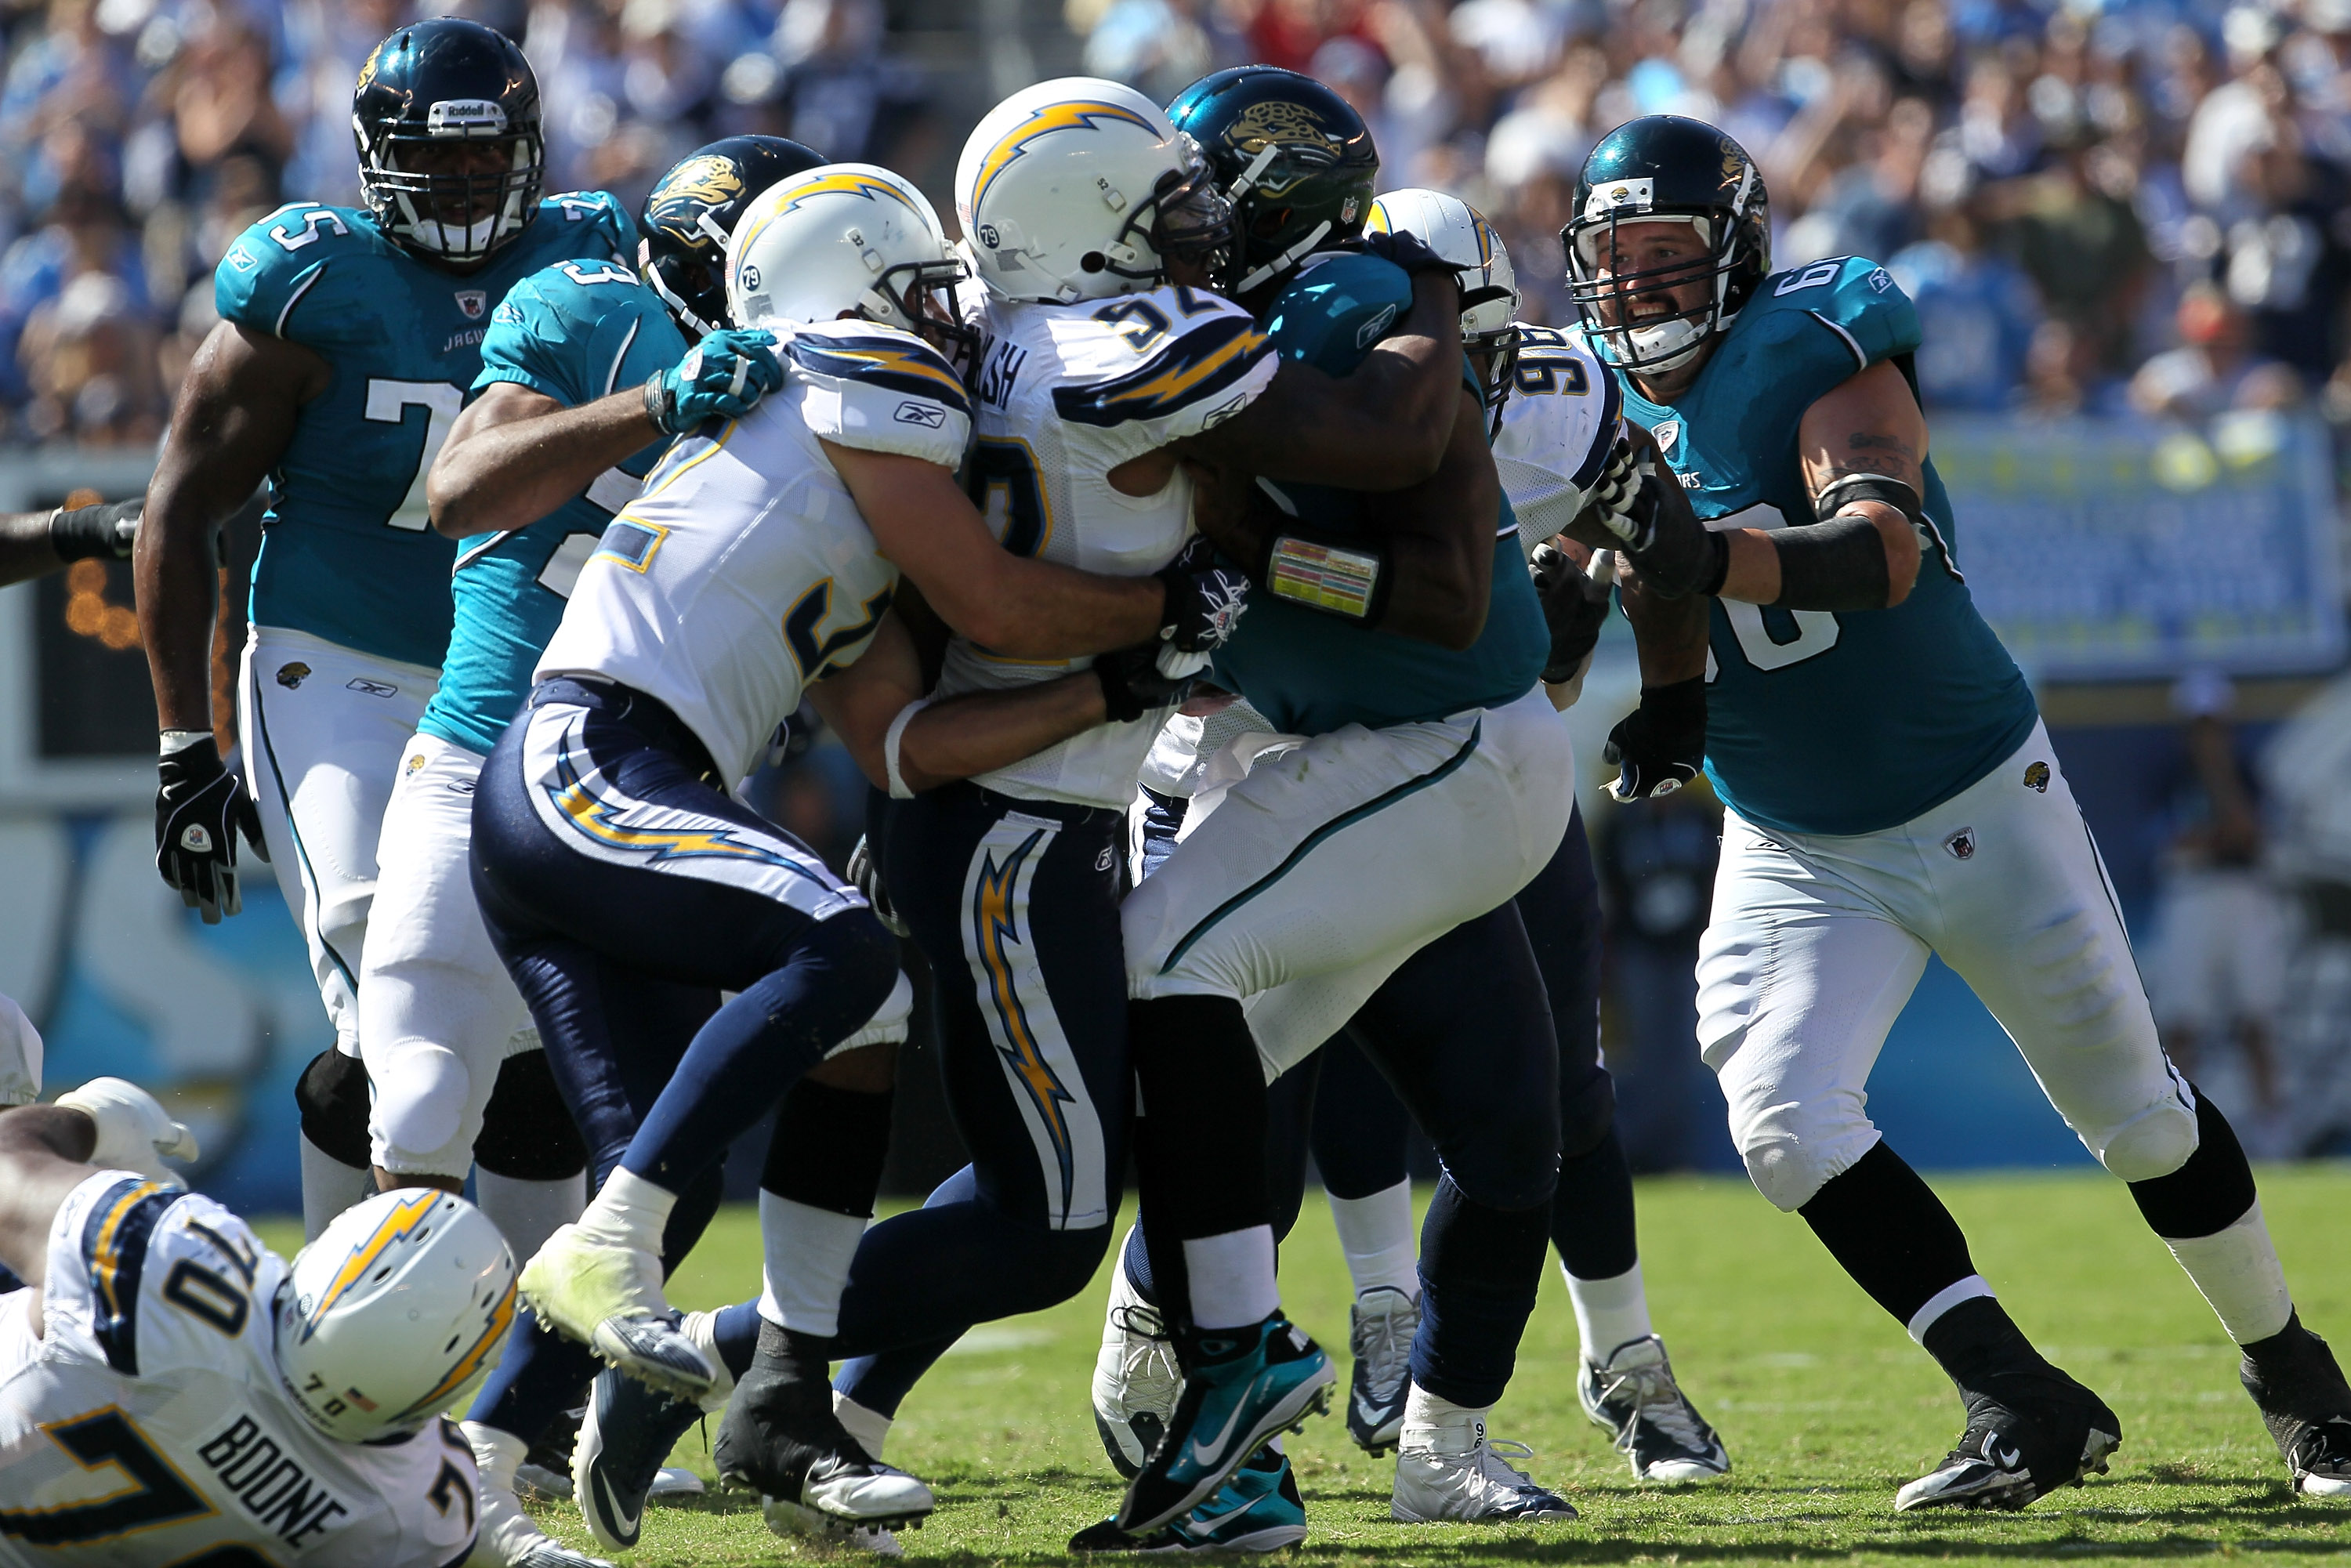 SAN DIEGO - SEPTEMBER 19:  Quarterback David Garrard #9 of the Jacksonville Jaguars is sacked by linebacker Larry English #52 and safety Eric Weddle #32 of the San Diego Chargers at Qualcomm Stadium on September 19, 2010 in San Diego, California.   The Ch